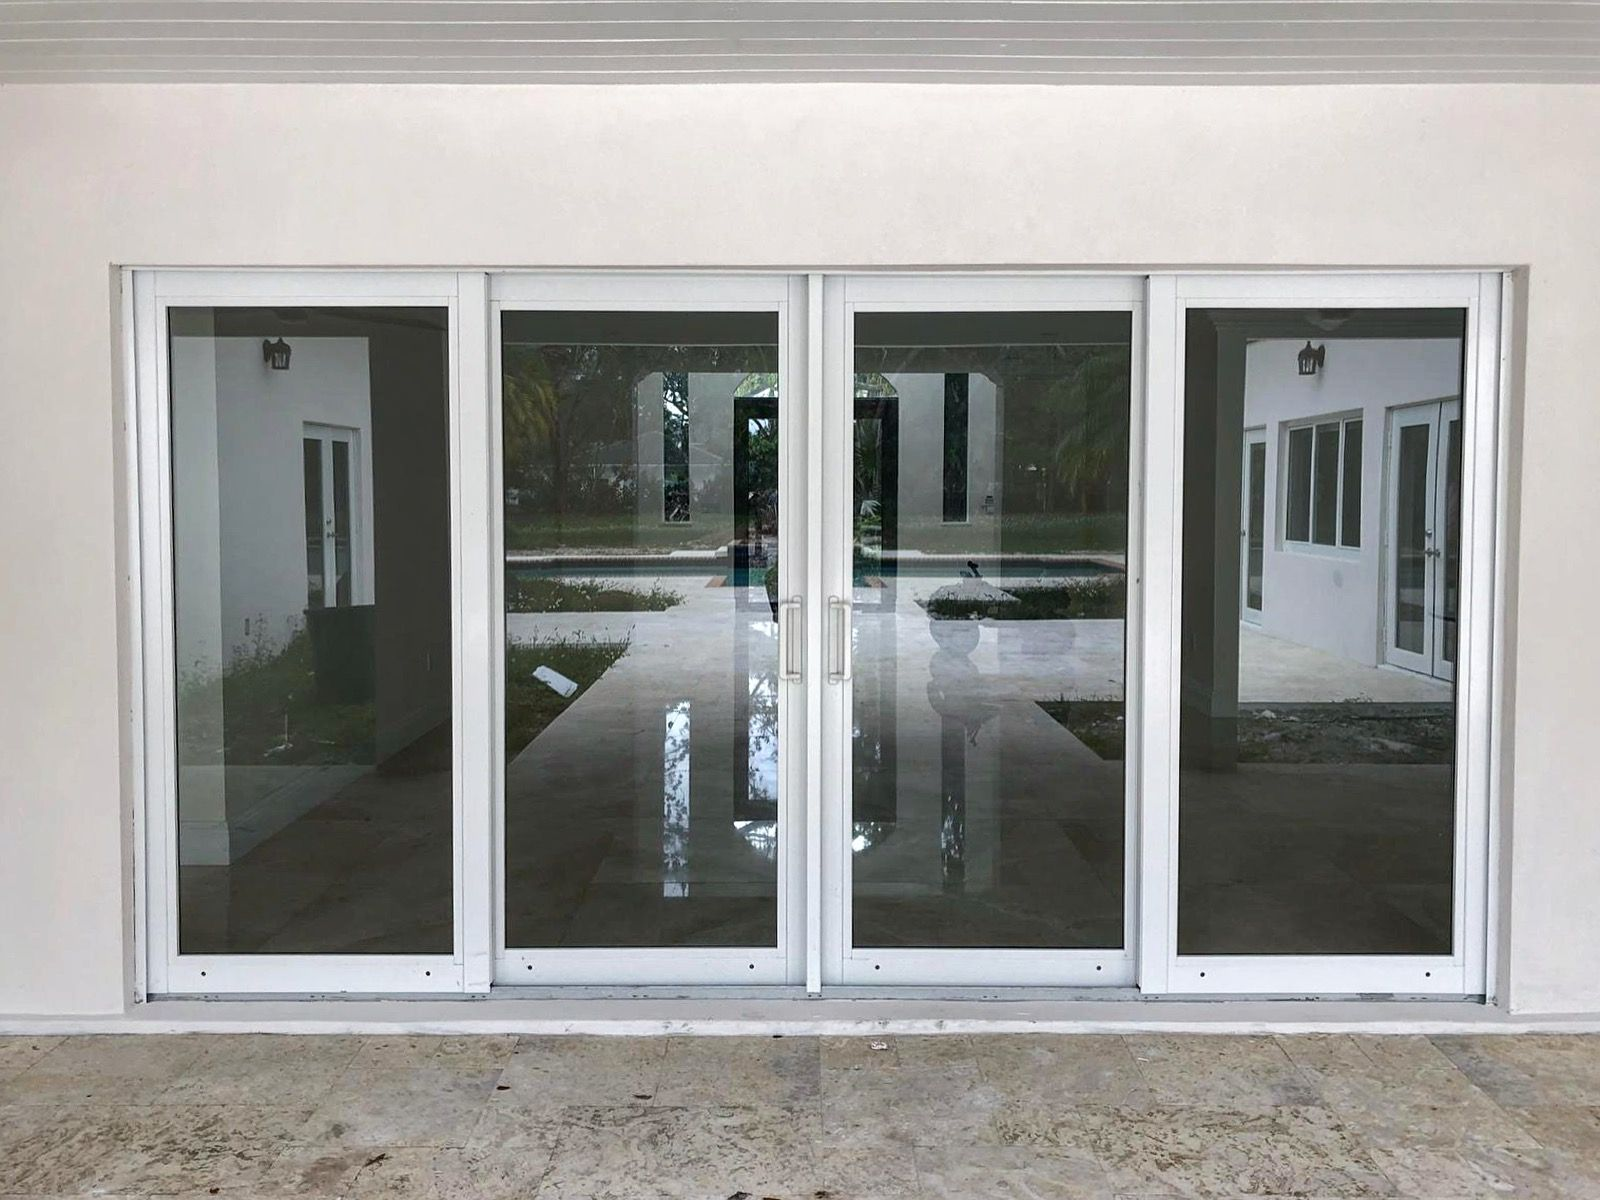 Completed Installation Of Cgi Sentinel Impact Resistant Windows And Doors Project In Pinecrest Fl The Picture Fe Windows And Doors Sliding Glass Door Windows